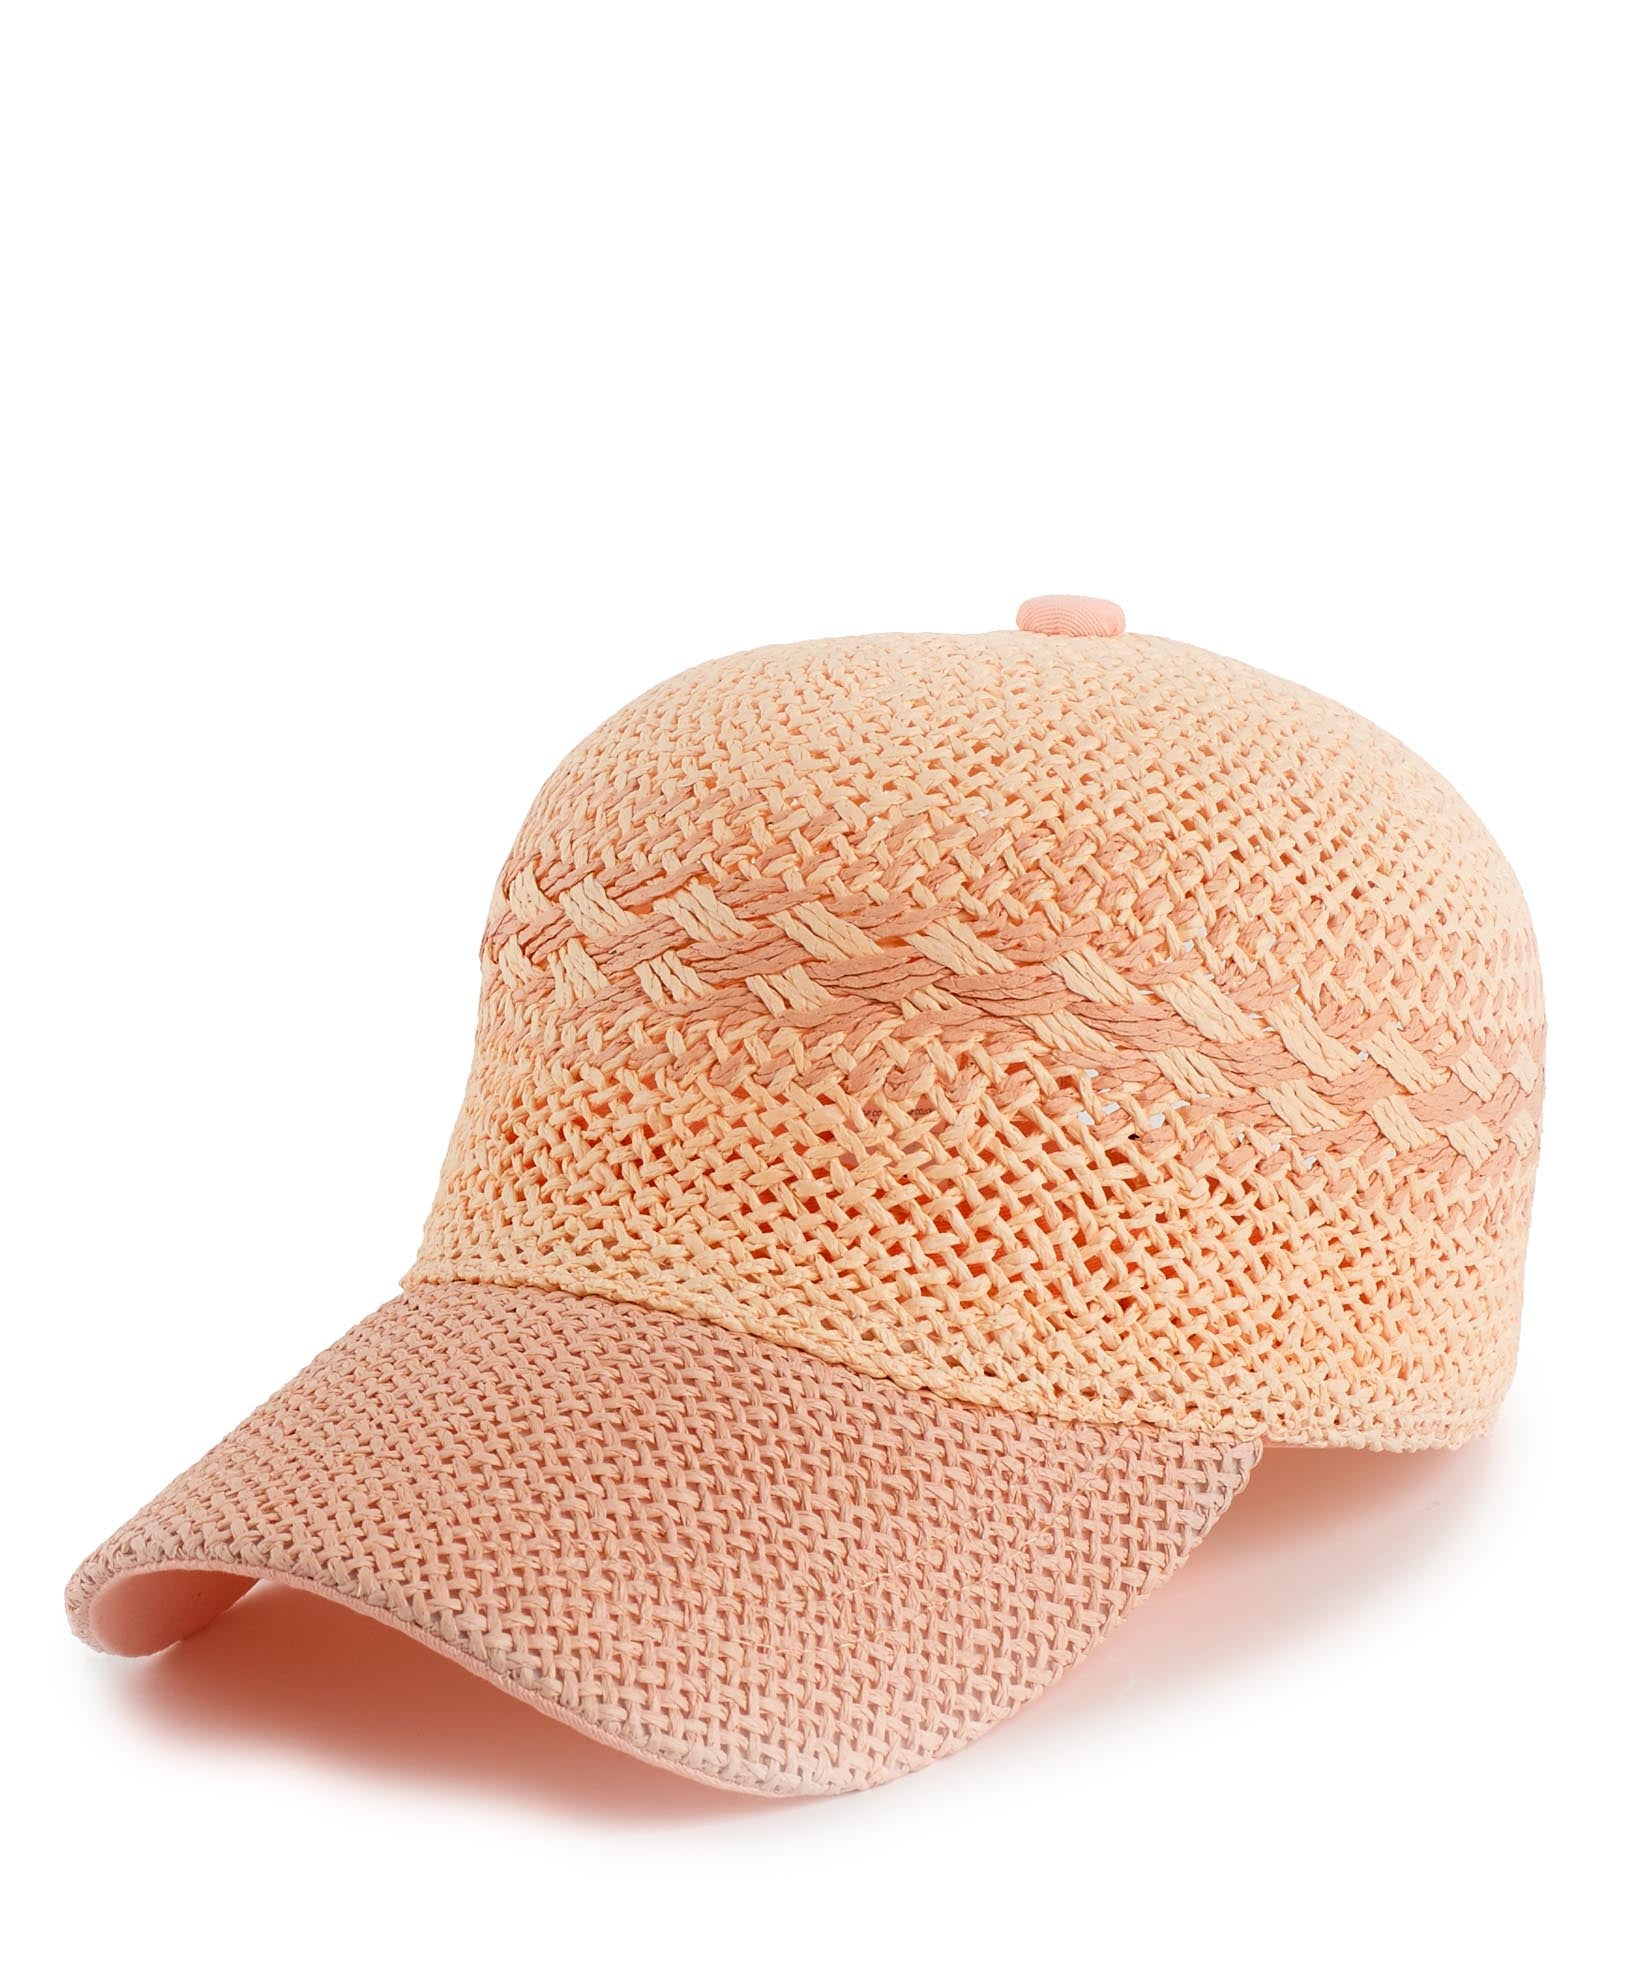 Shell - Beachy Baseball Cap